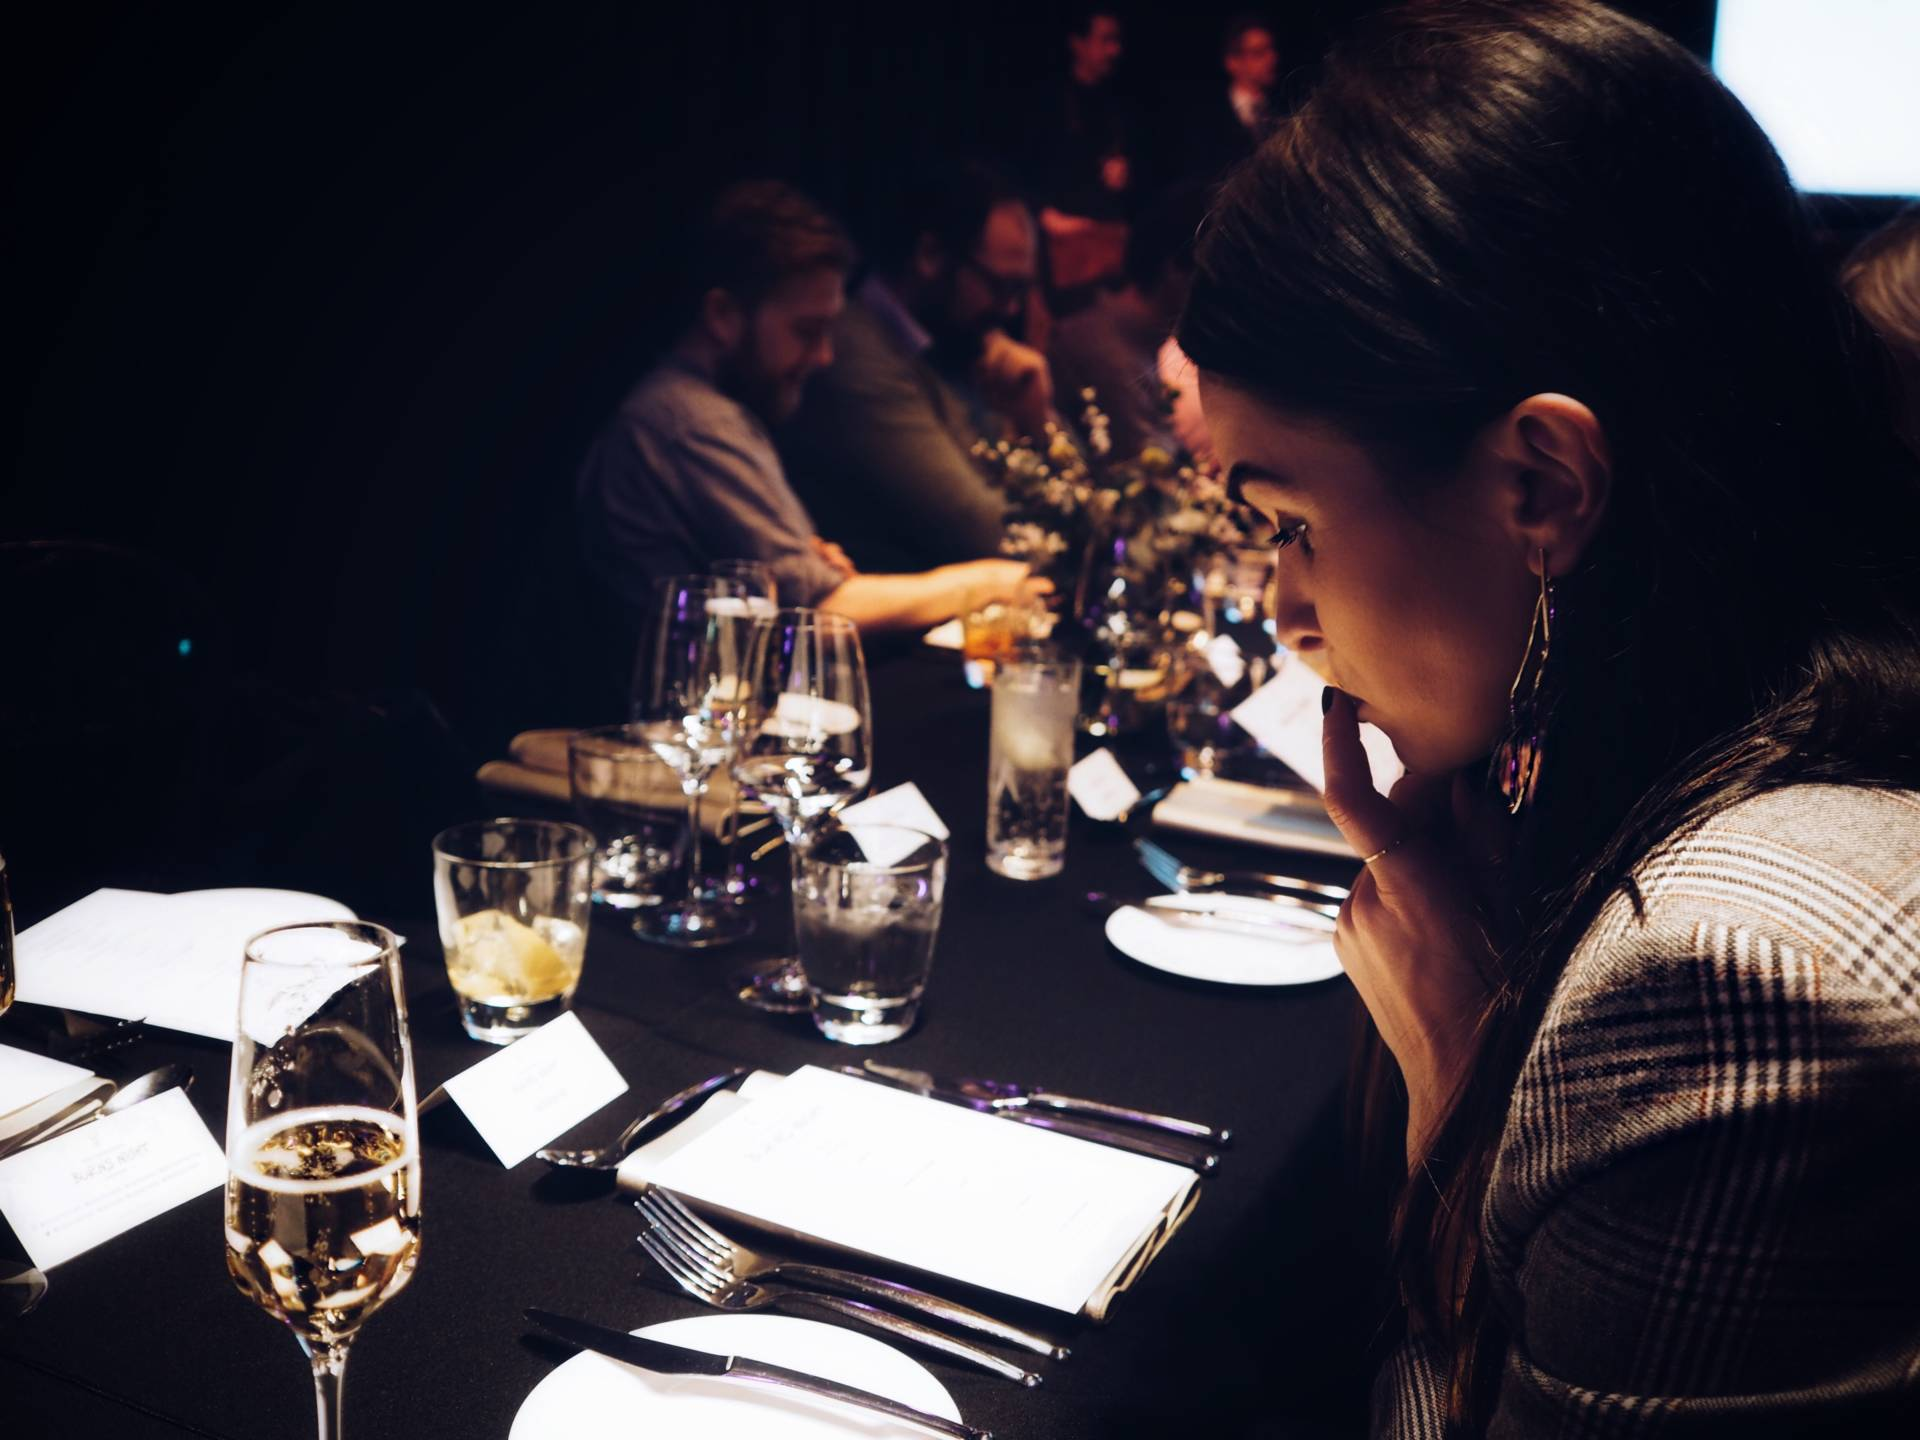 glenfiddich burns dinner experience